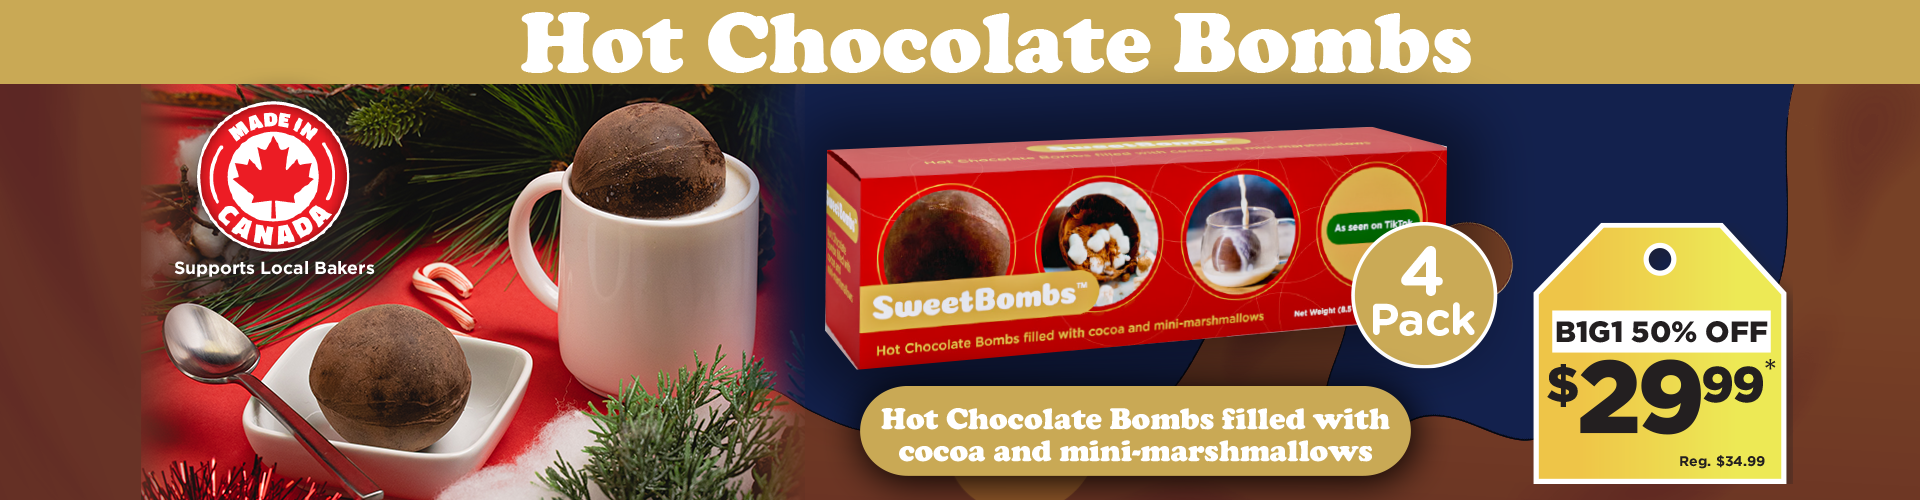 Hot Chocolate Bombs